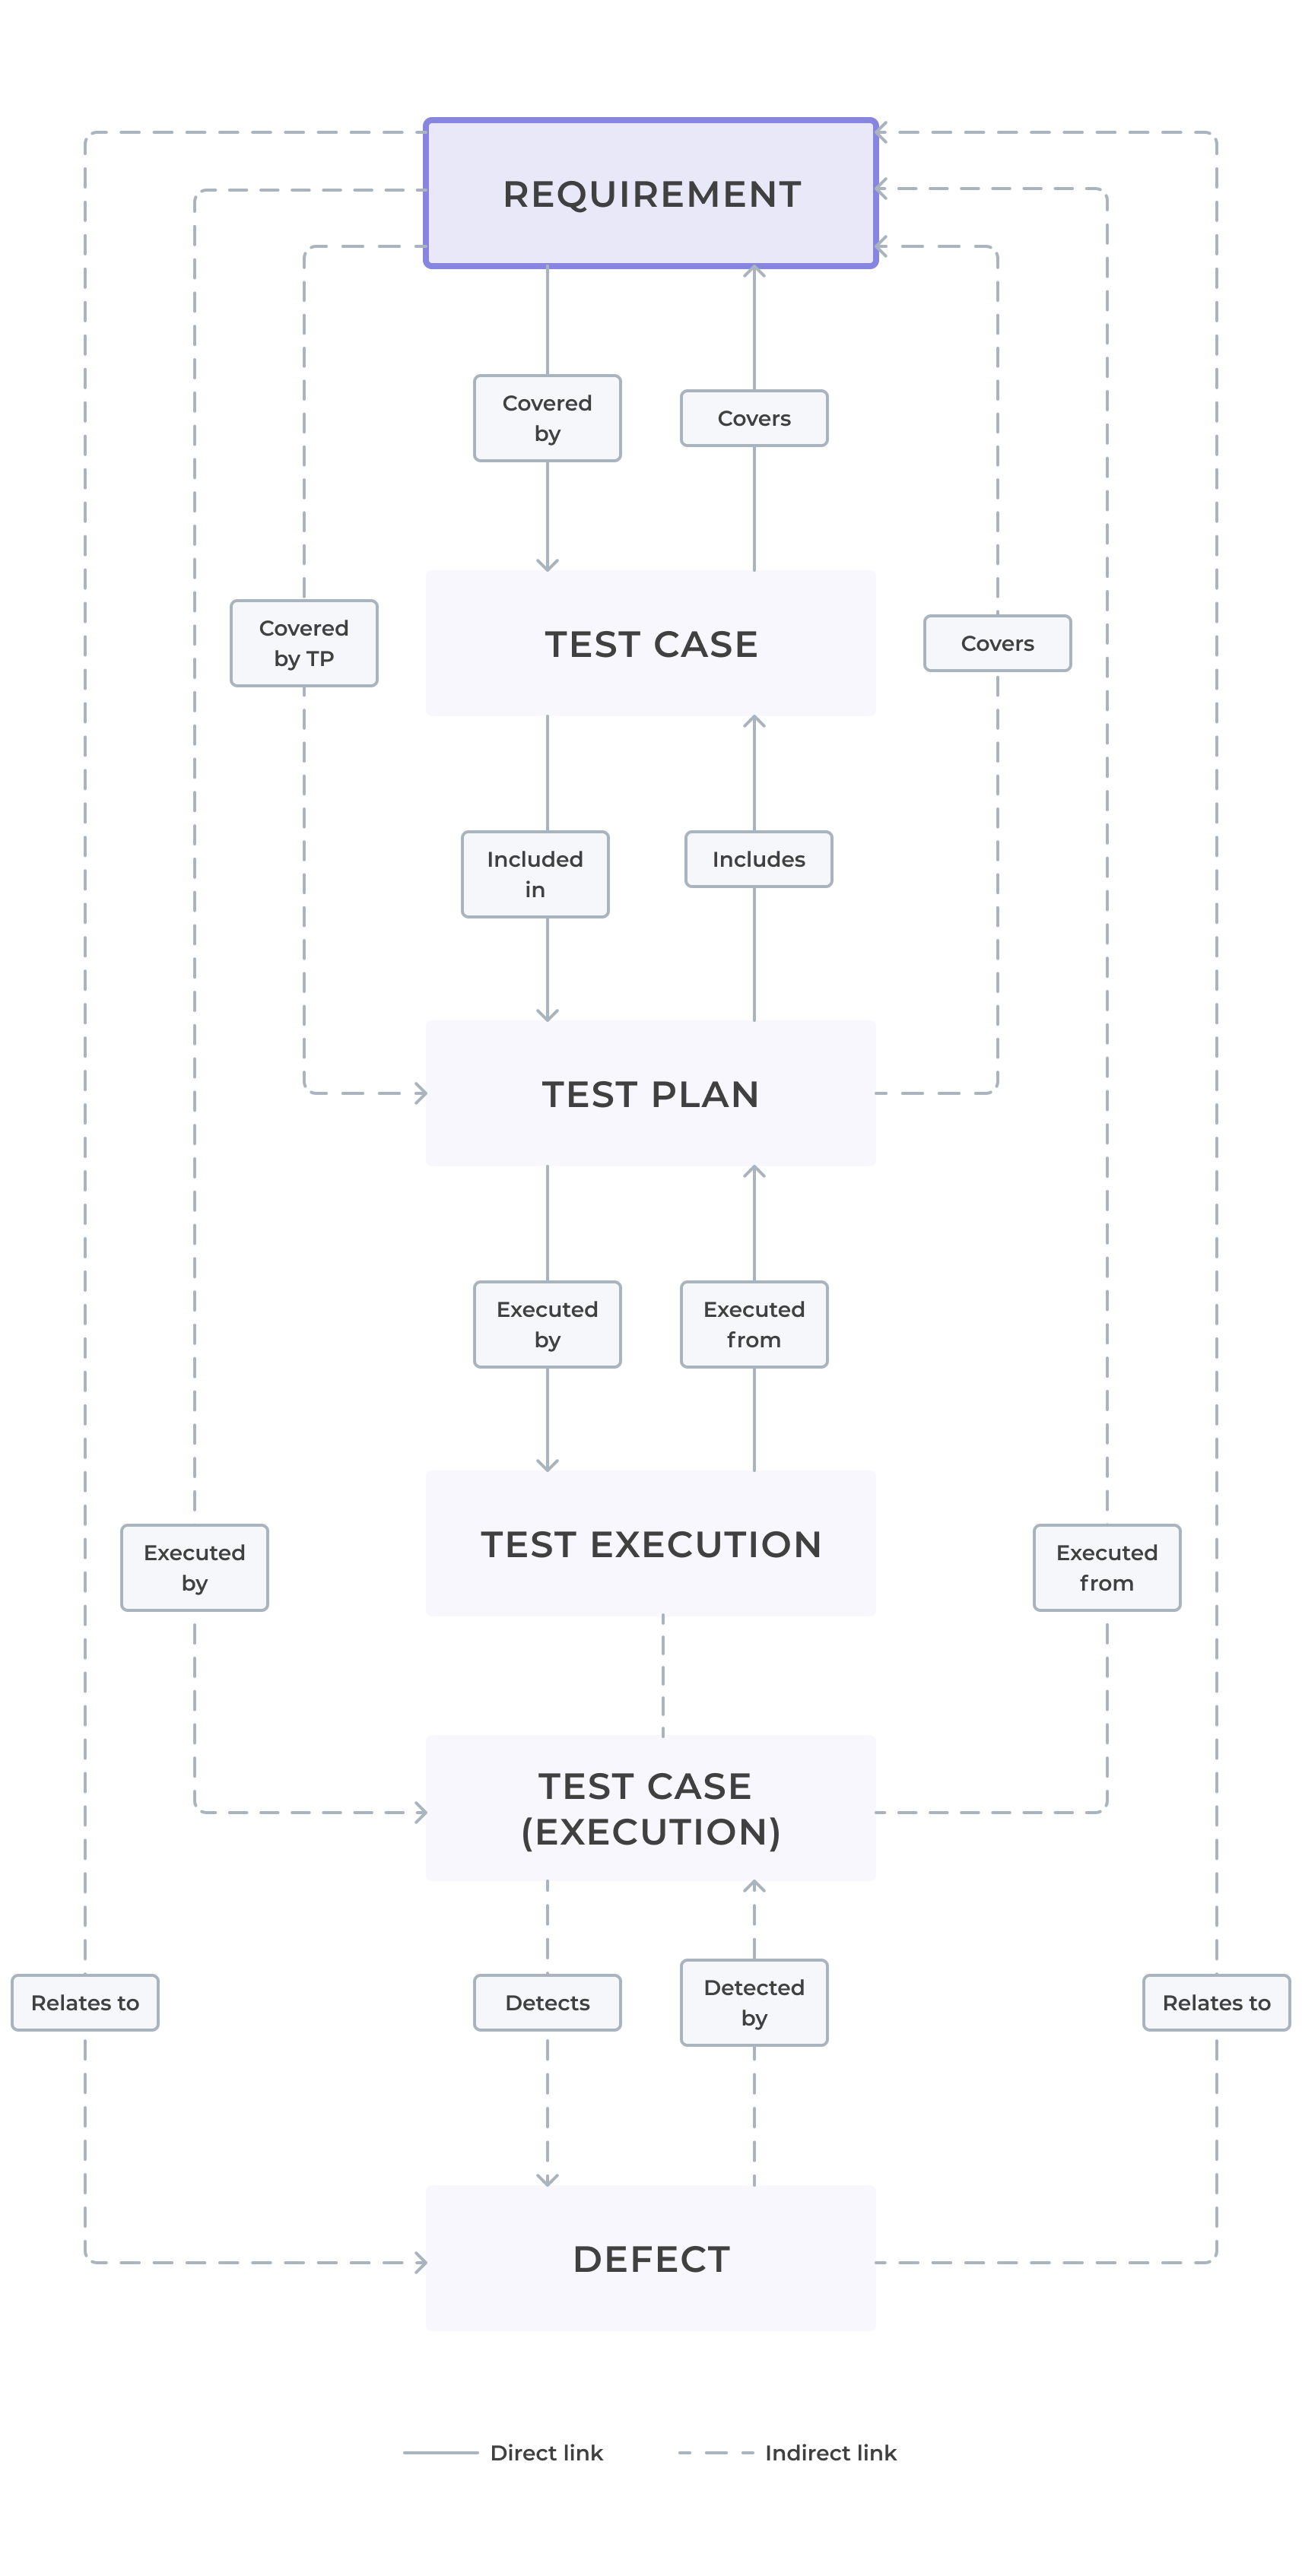 Relations in Requirements and Test Management for Jira